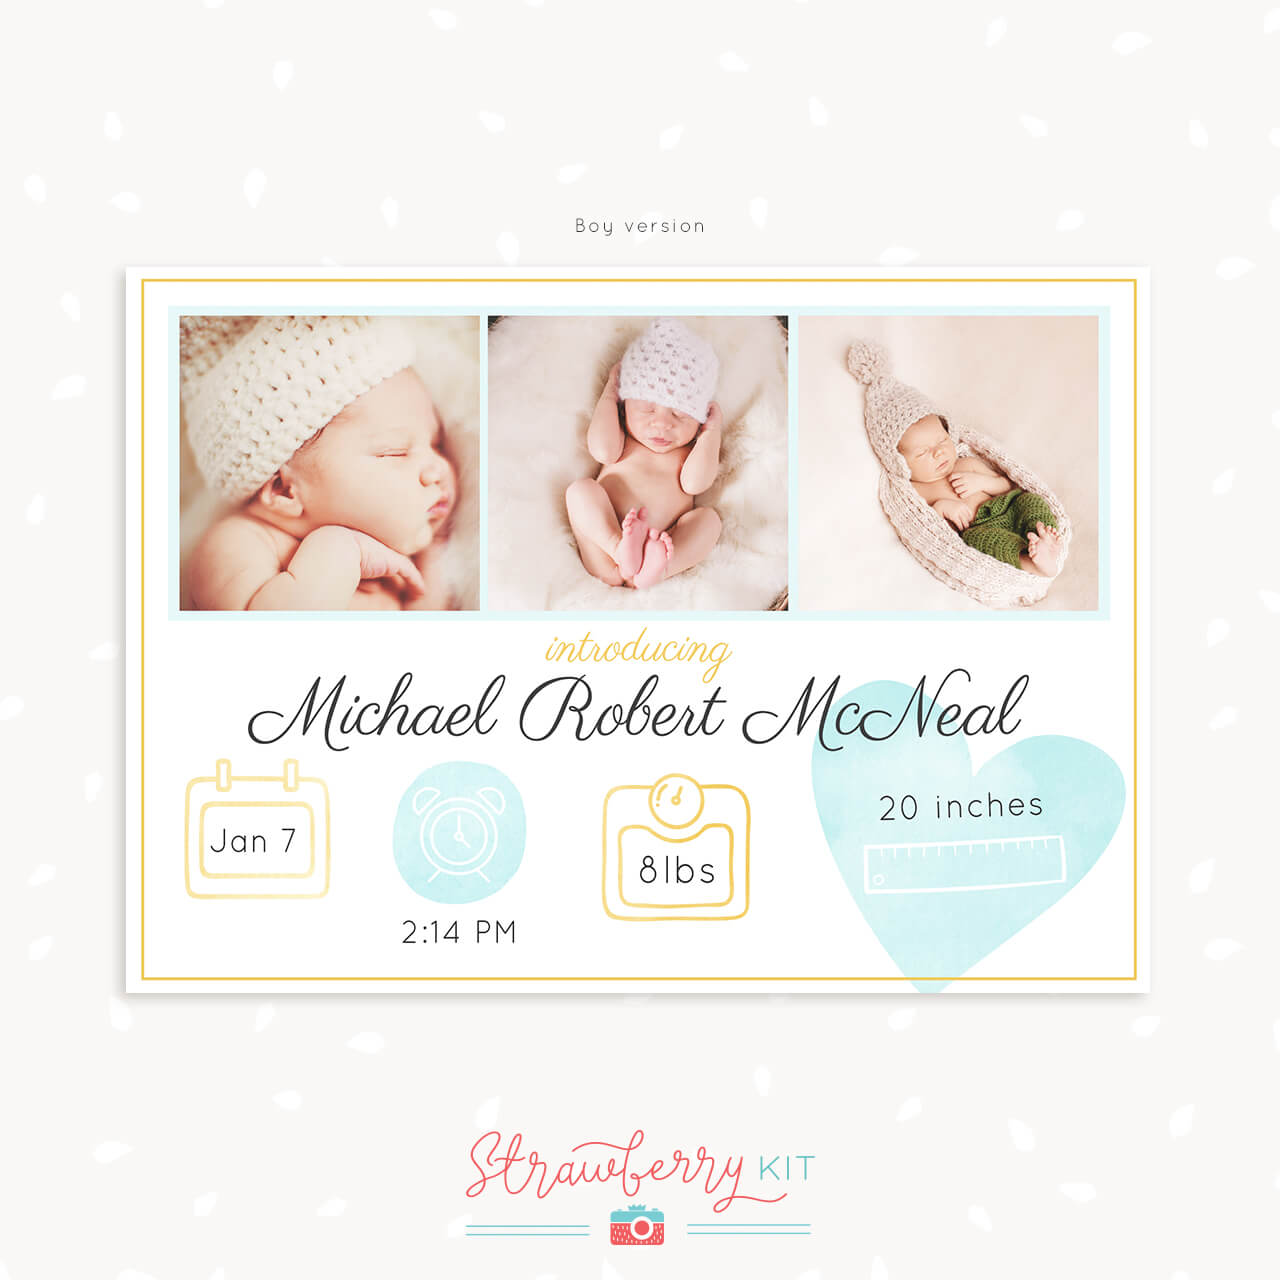 birth announcement with stats and photos strawberry kit